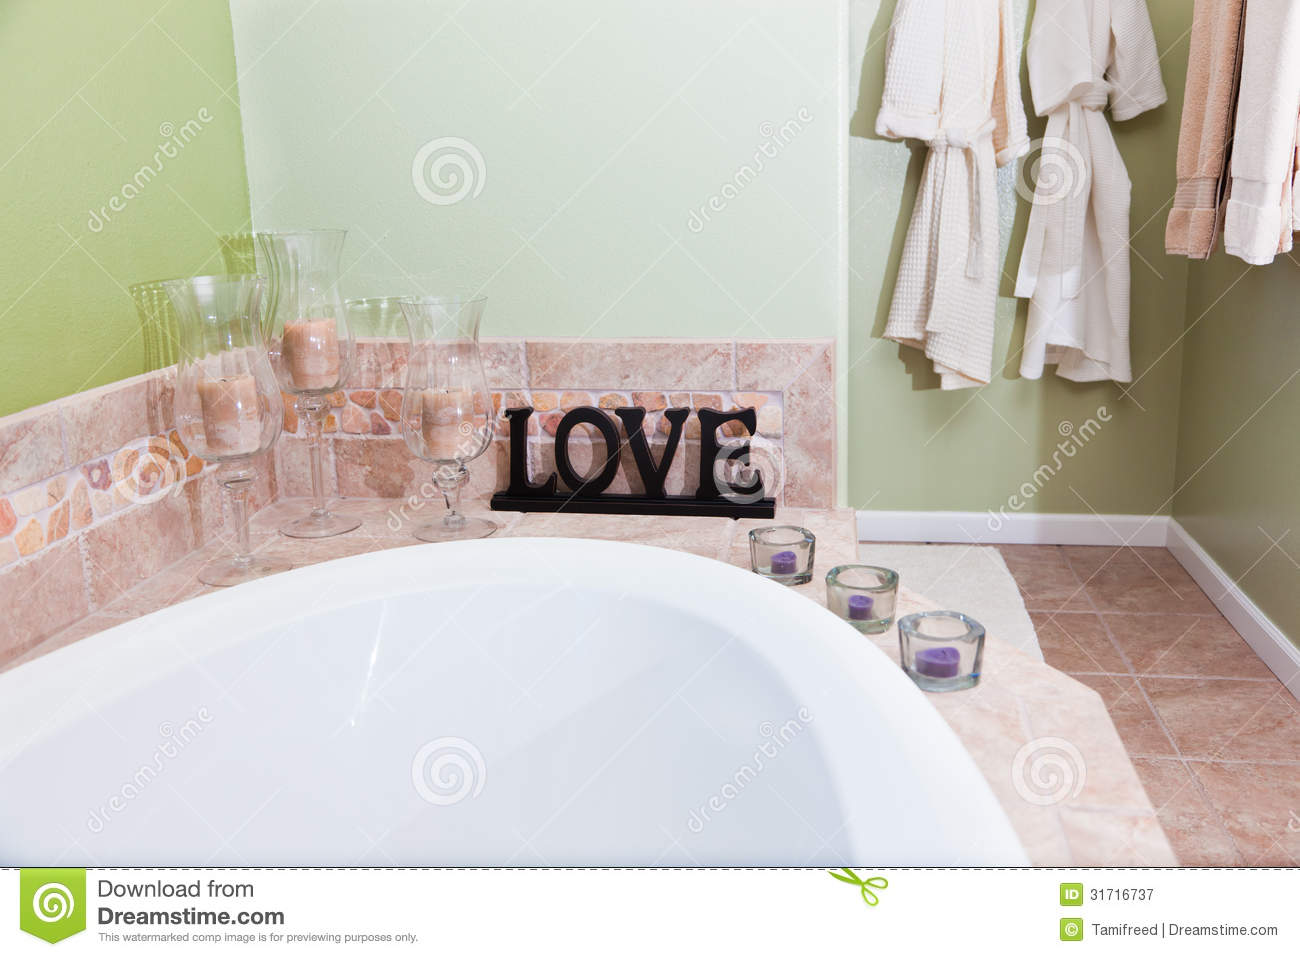 Love In The Bathroom